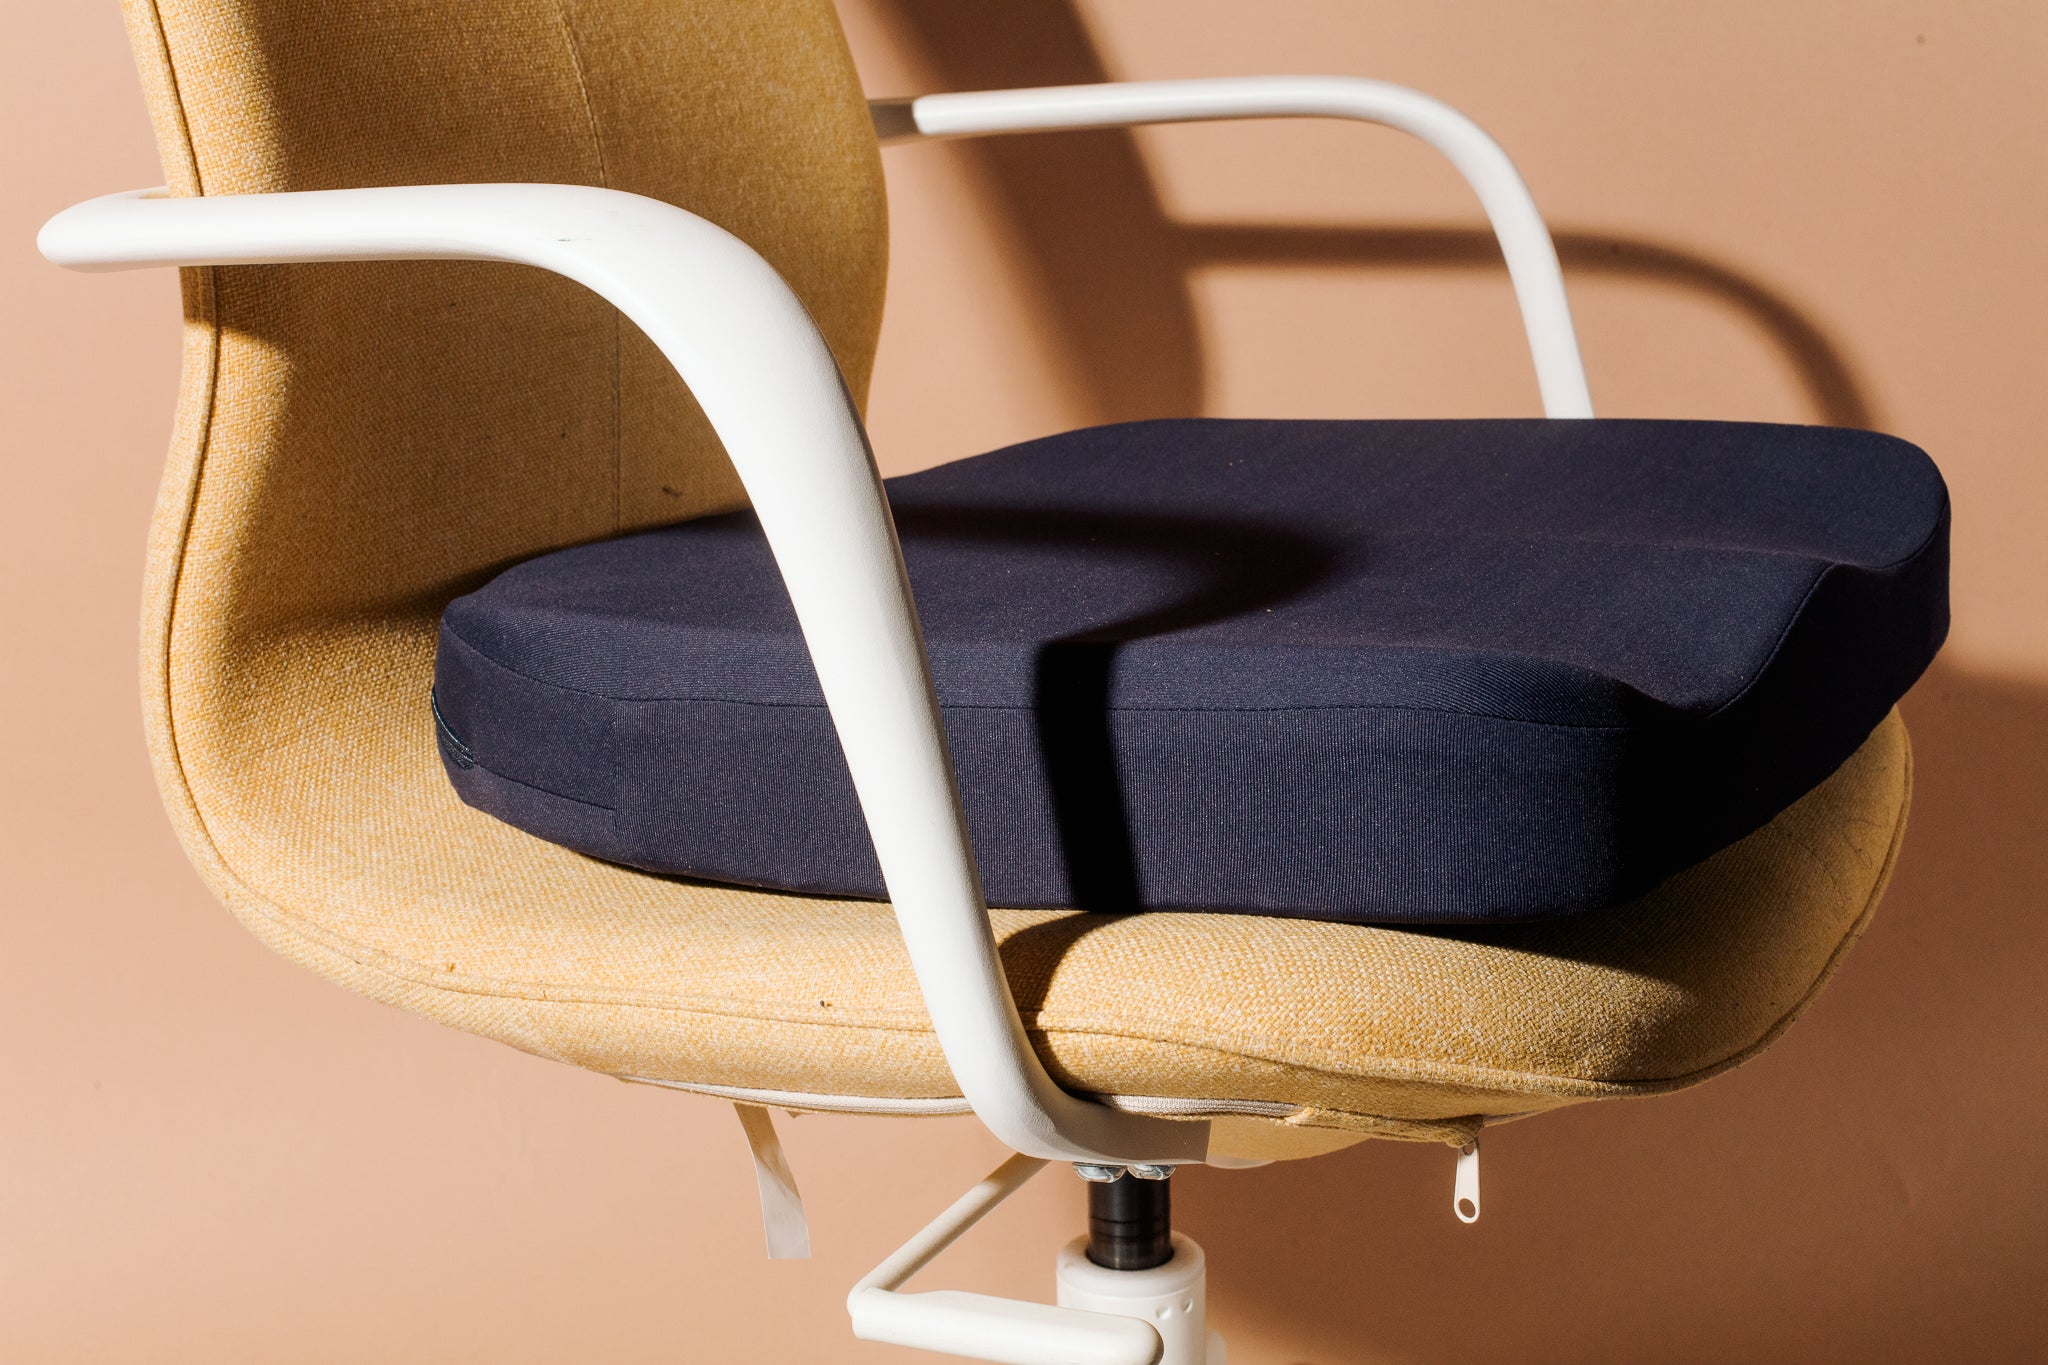 the best ergonomic seat cushions for